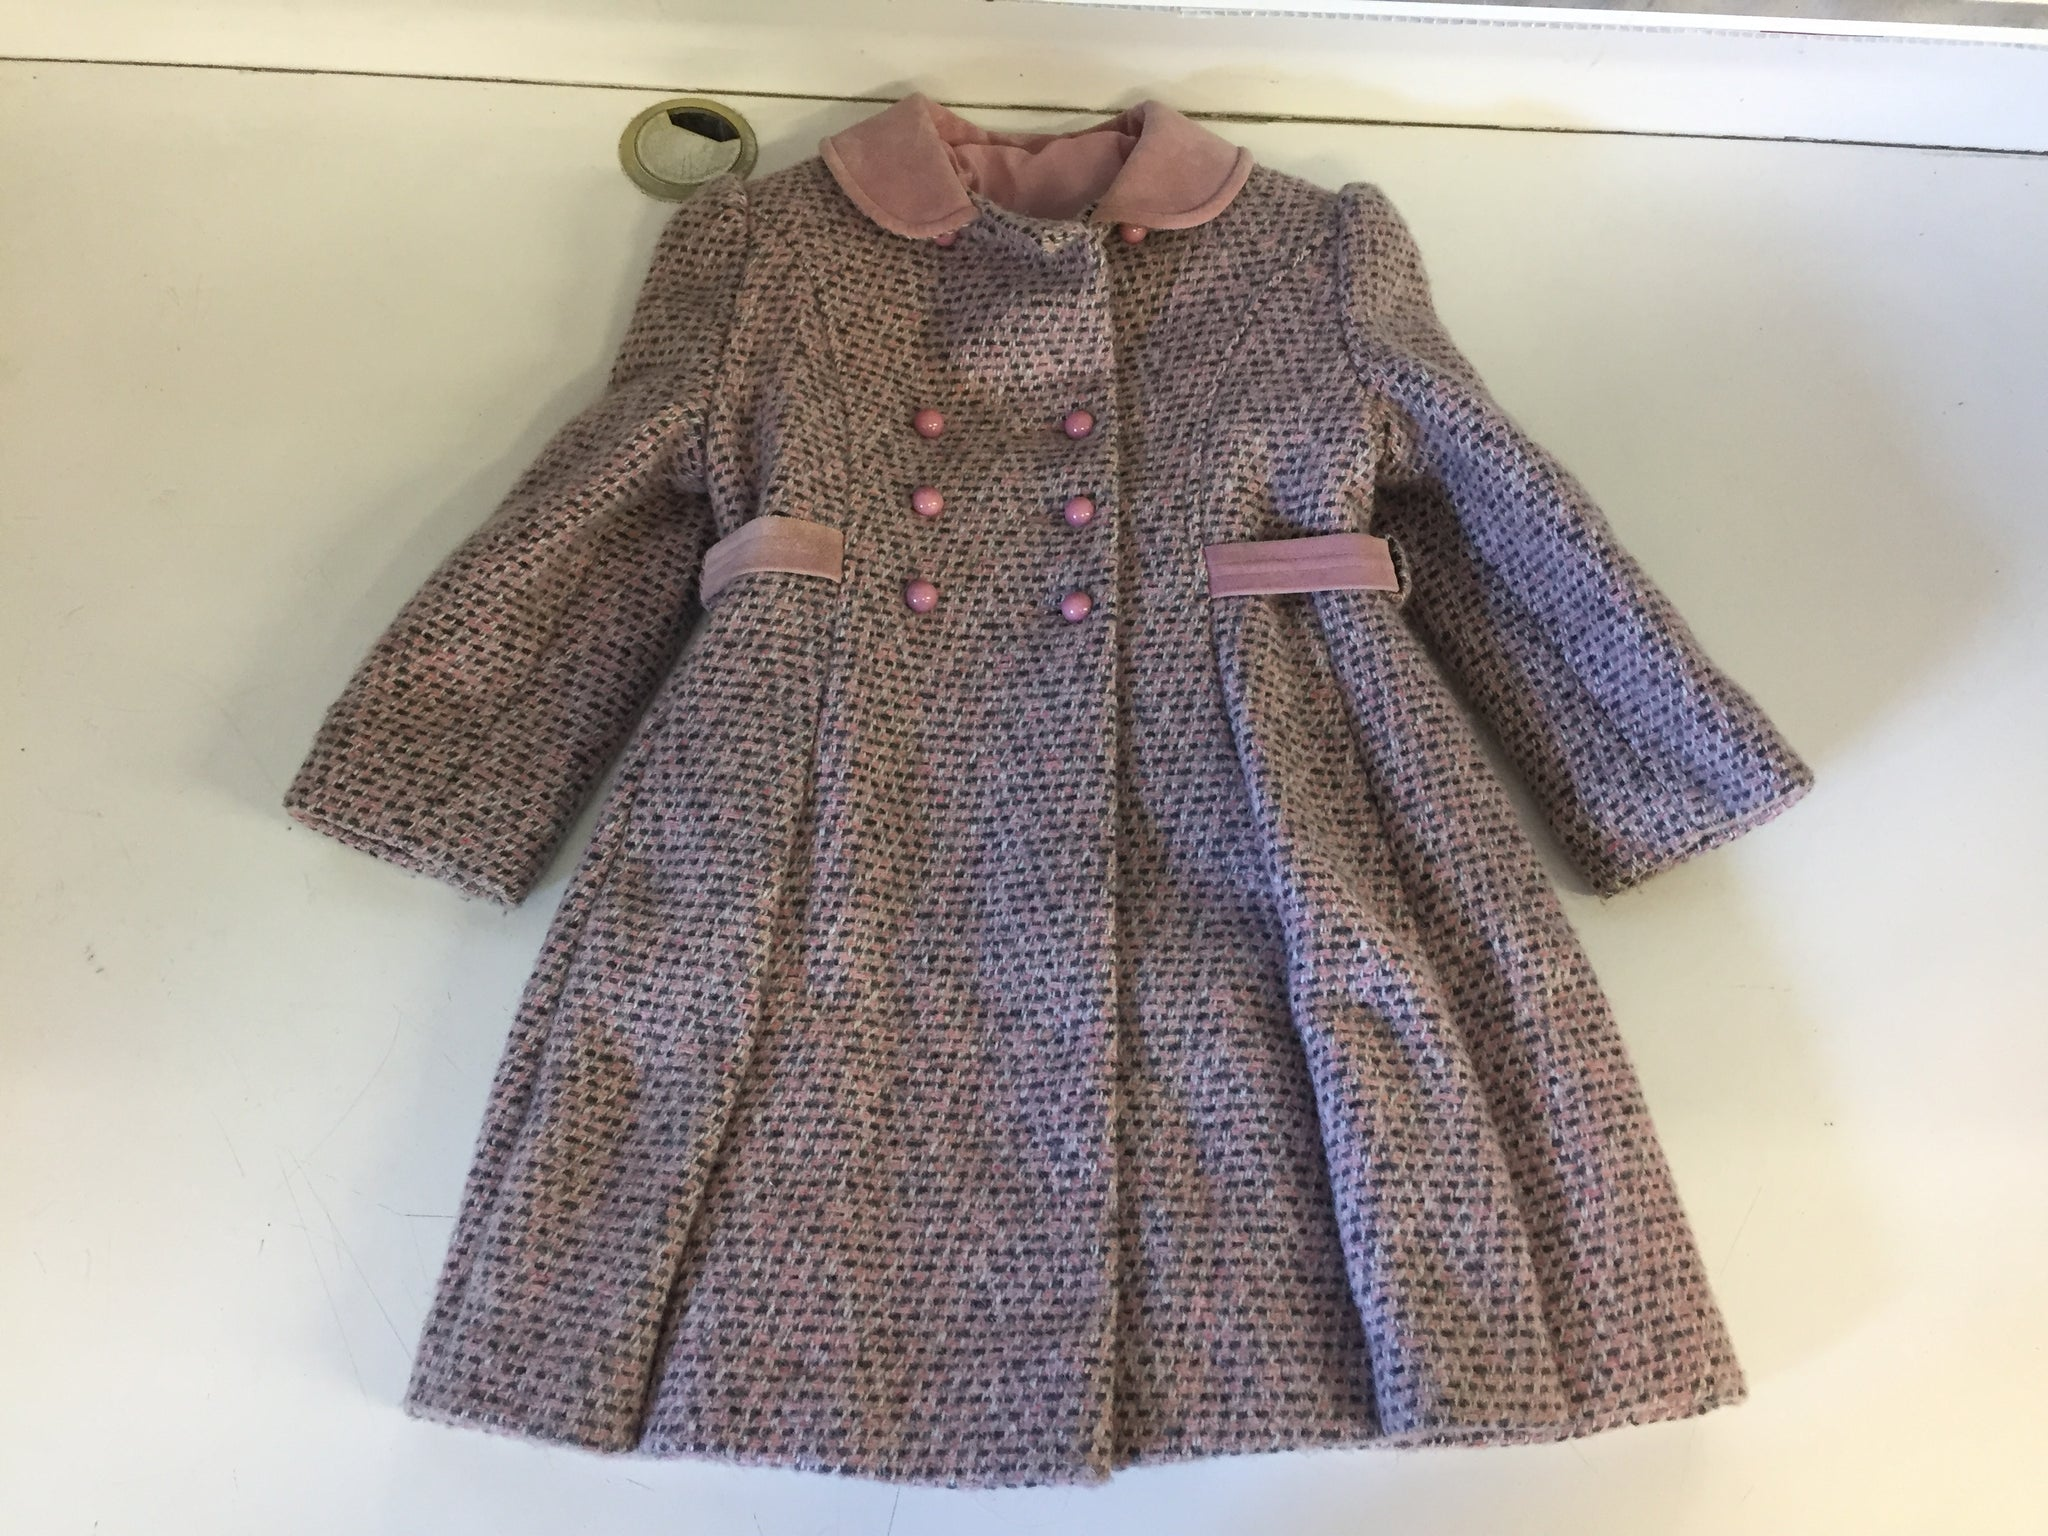 Vintage 1970's Pink Tweed Fit & Flair Child's Coat FW Fischer Designs For Ellerie Fashions Sz 5 Little Girl